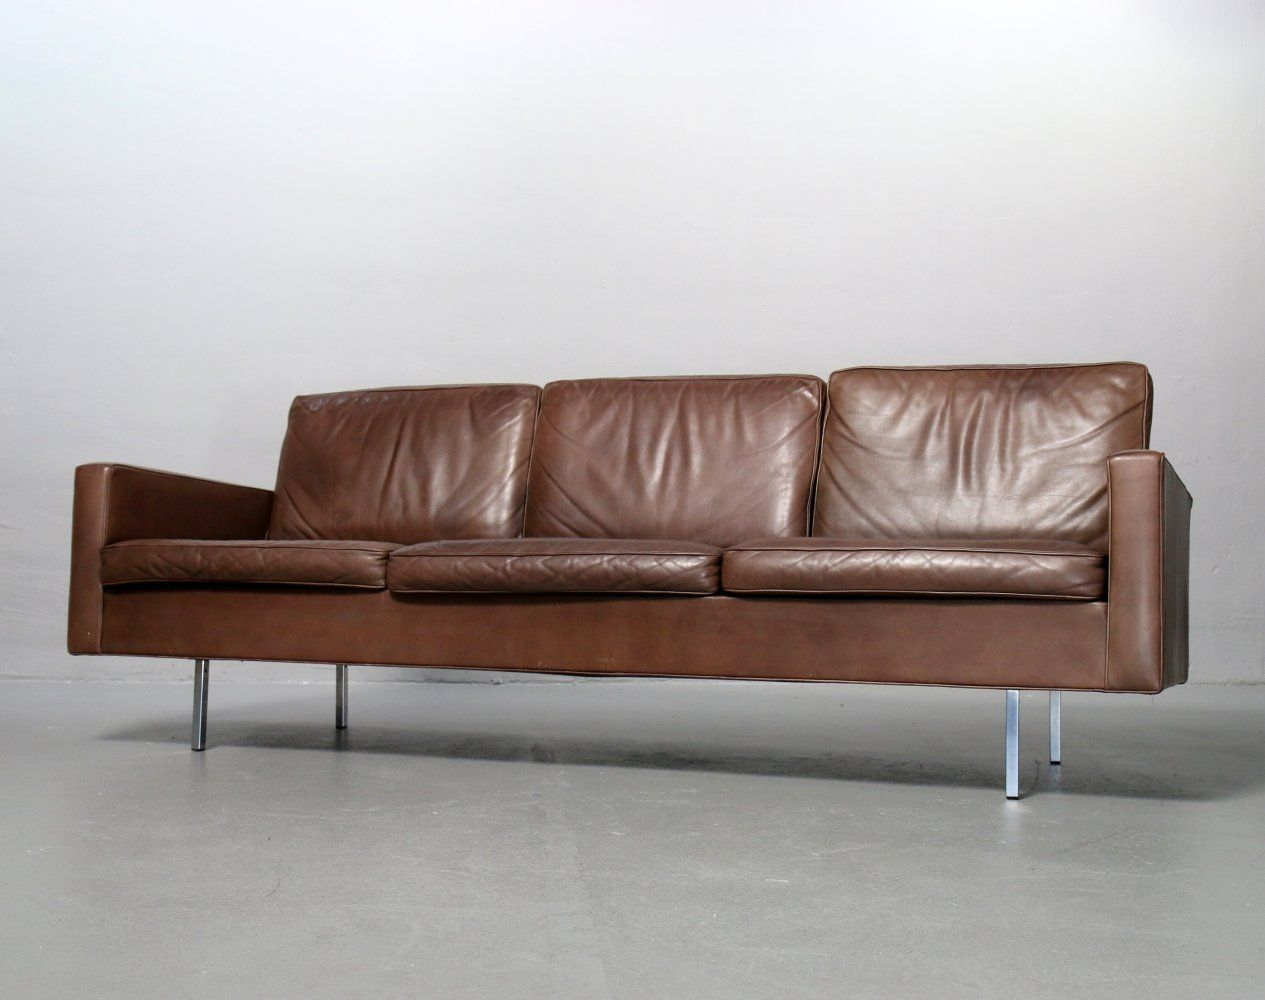 For Sale 25 Bc 3 Seater Sofa By Florence Knoll For Knoll 1960s Vntg Vintage In 2021 Florence Knoll Sofa Knoll Sofa Sofa